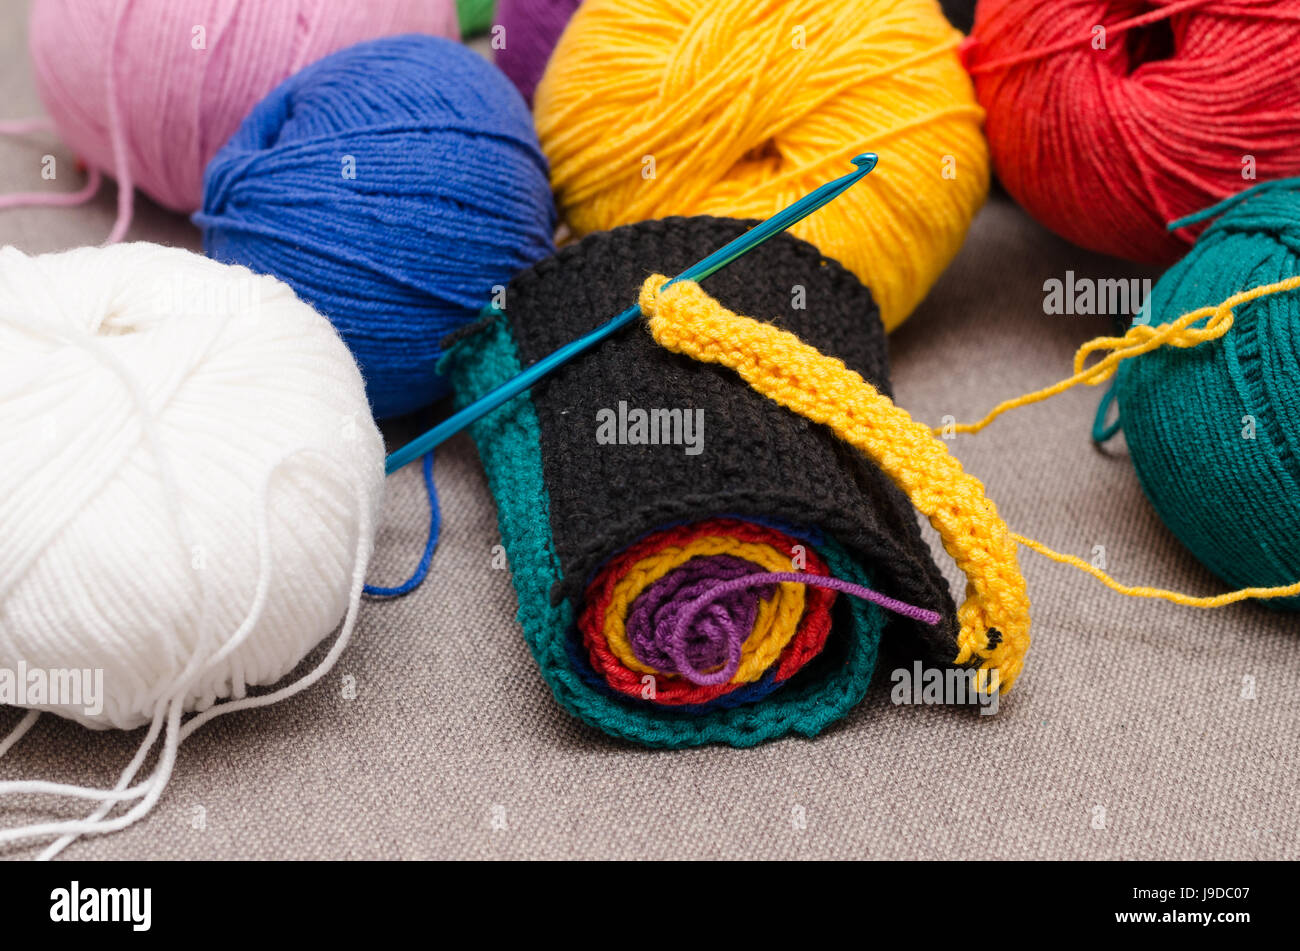 Colored balls of yarn. Rainbow colors. All colors. Yarn for knitting. Stock Photo